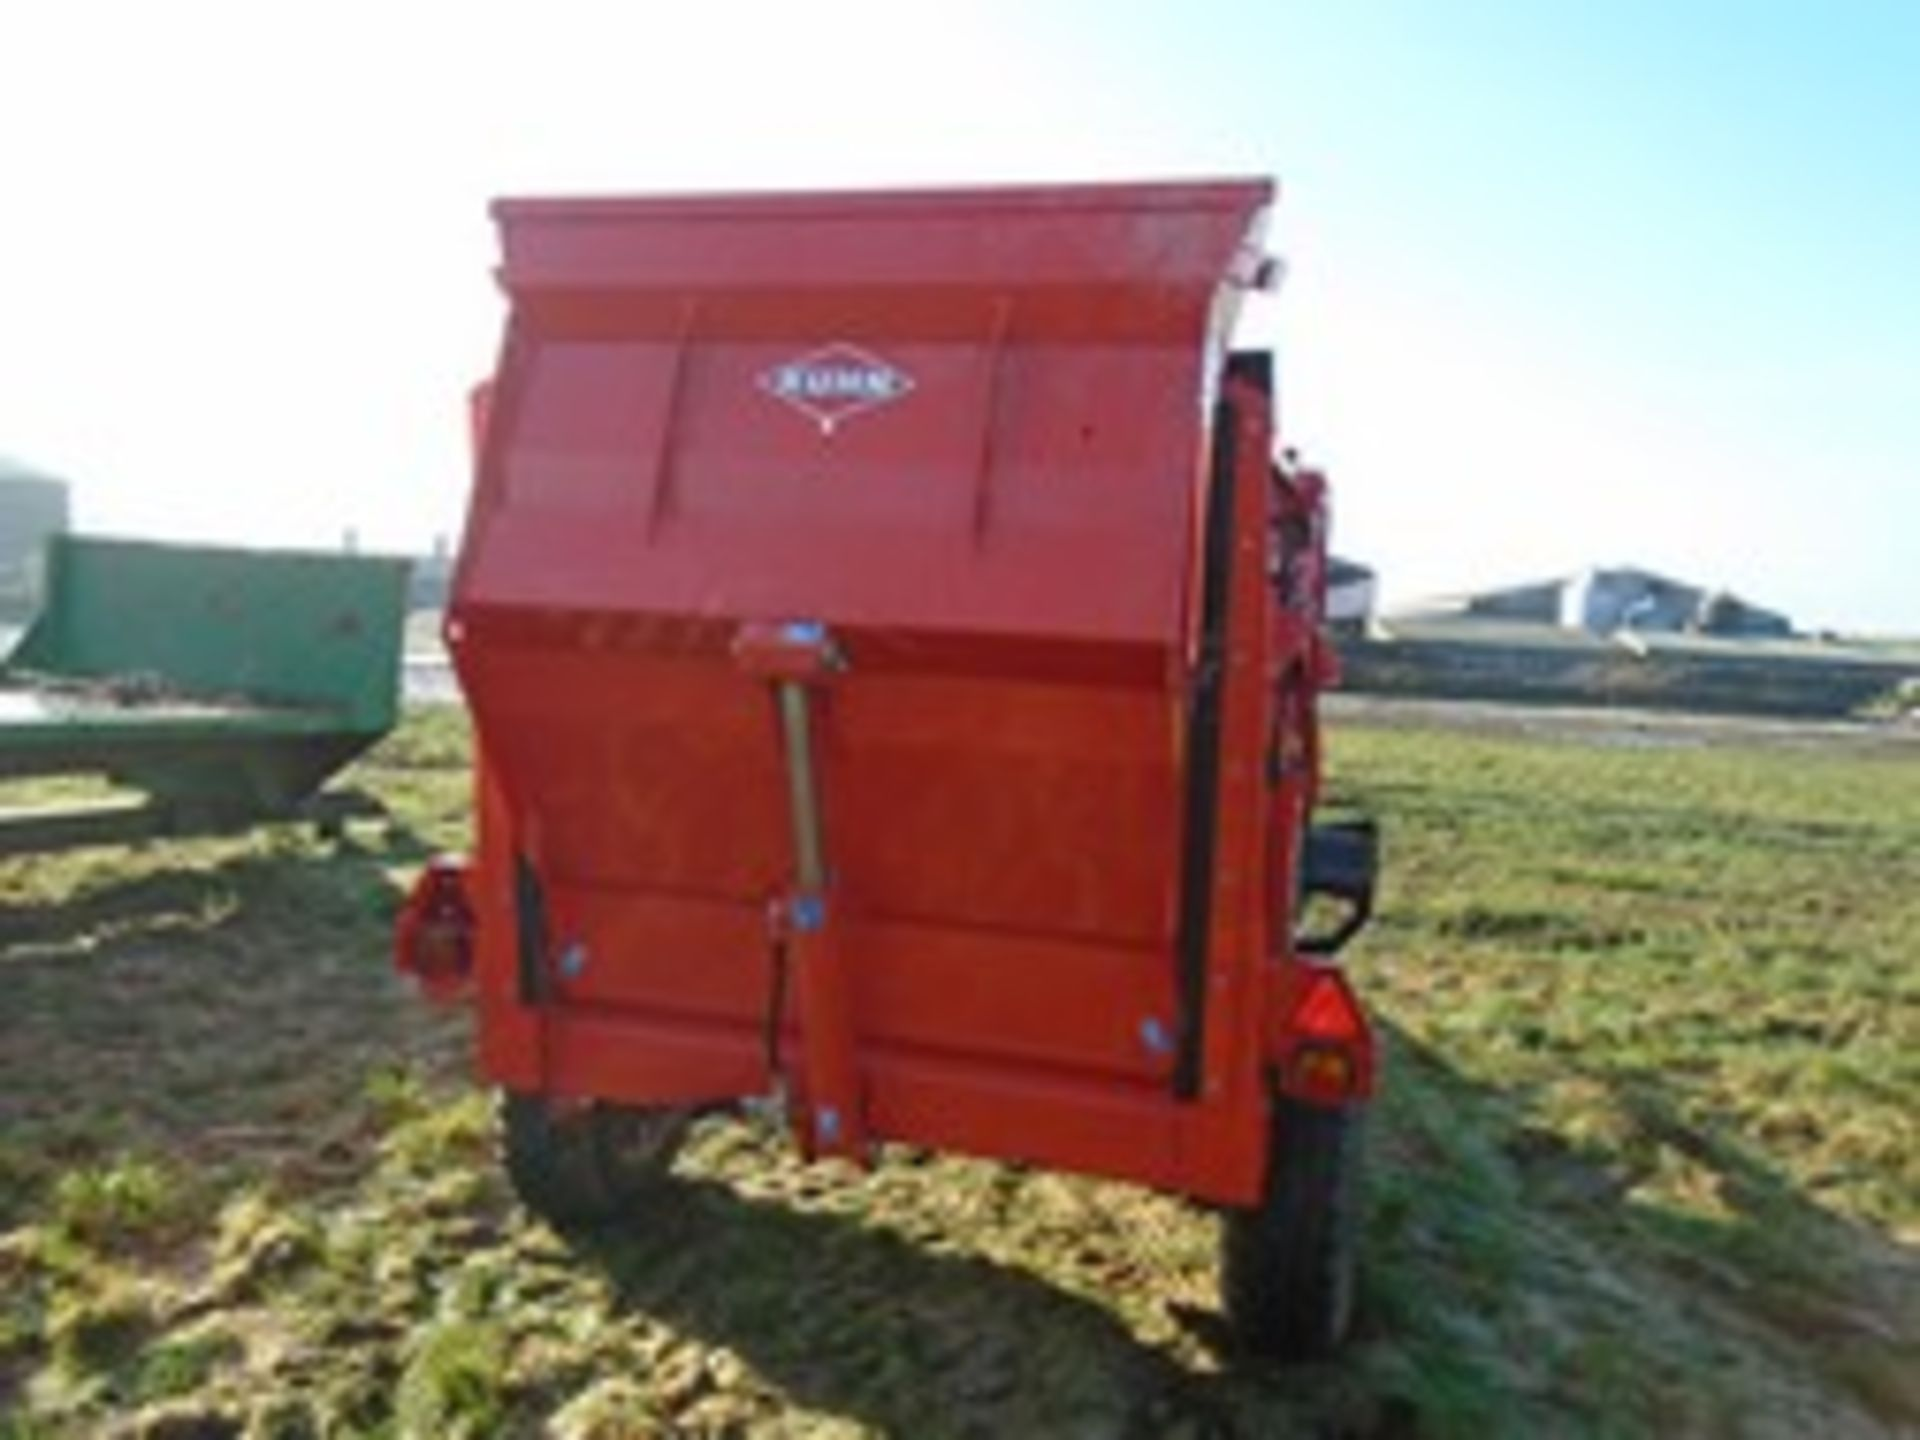 Lot 52 - Kuhn Primor 3570M straw chopper with control box 2017, very little use